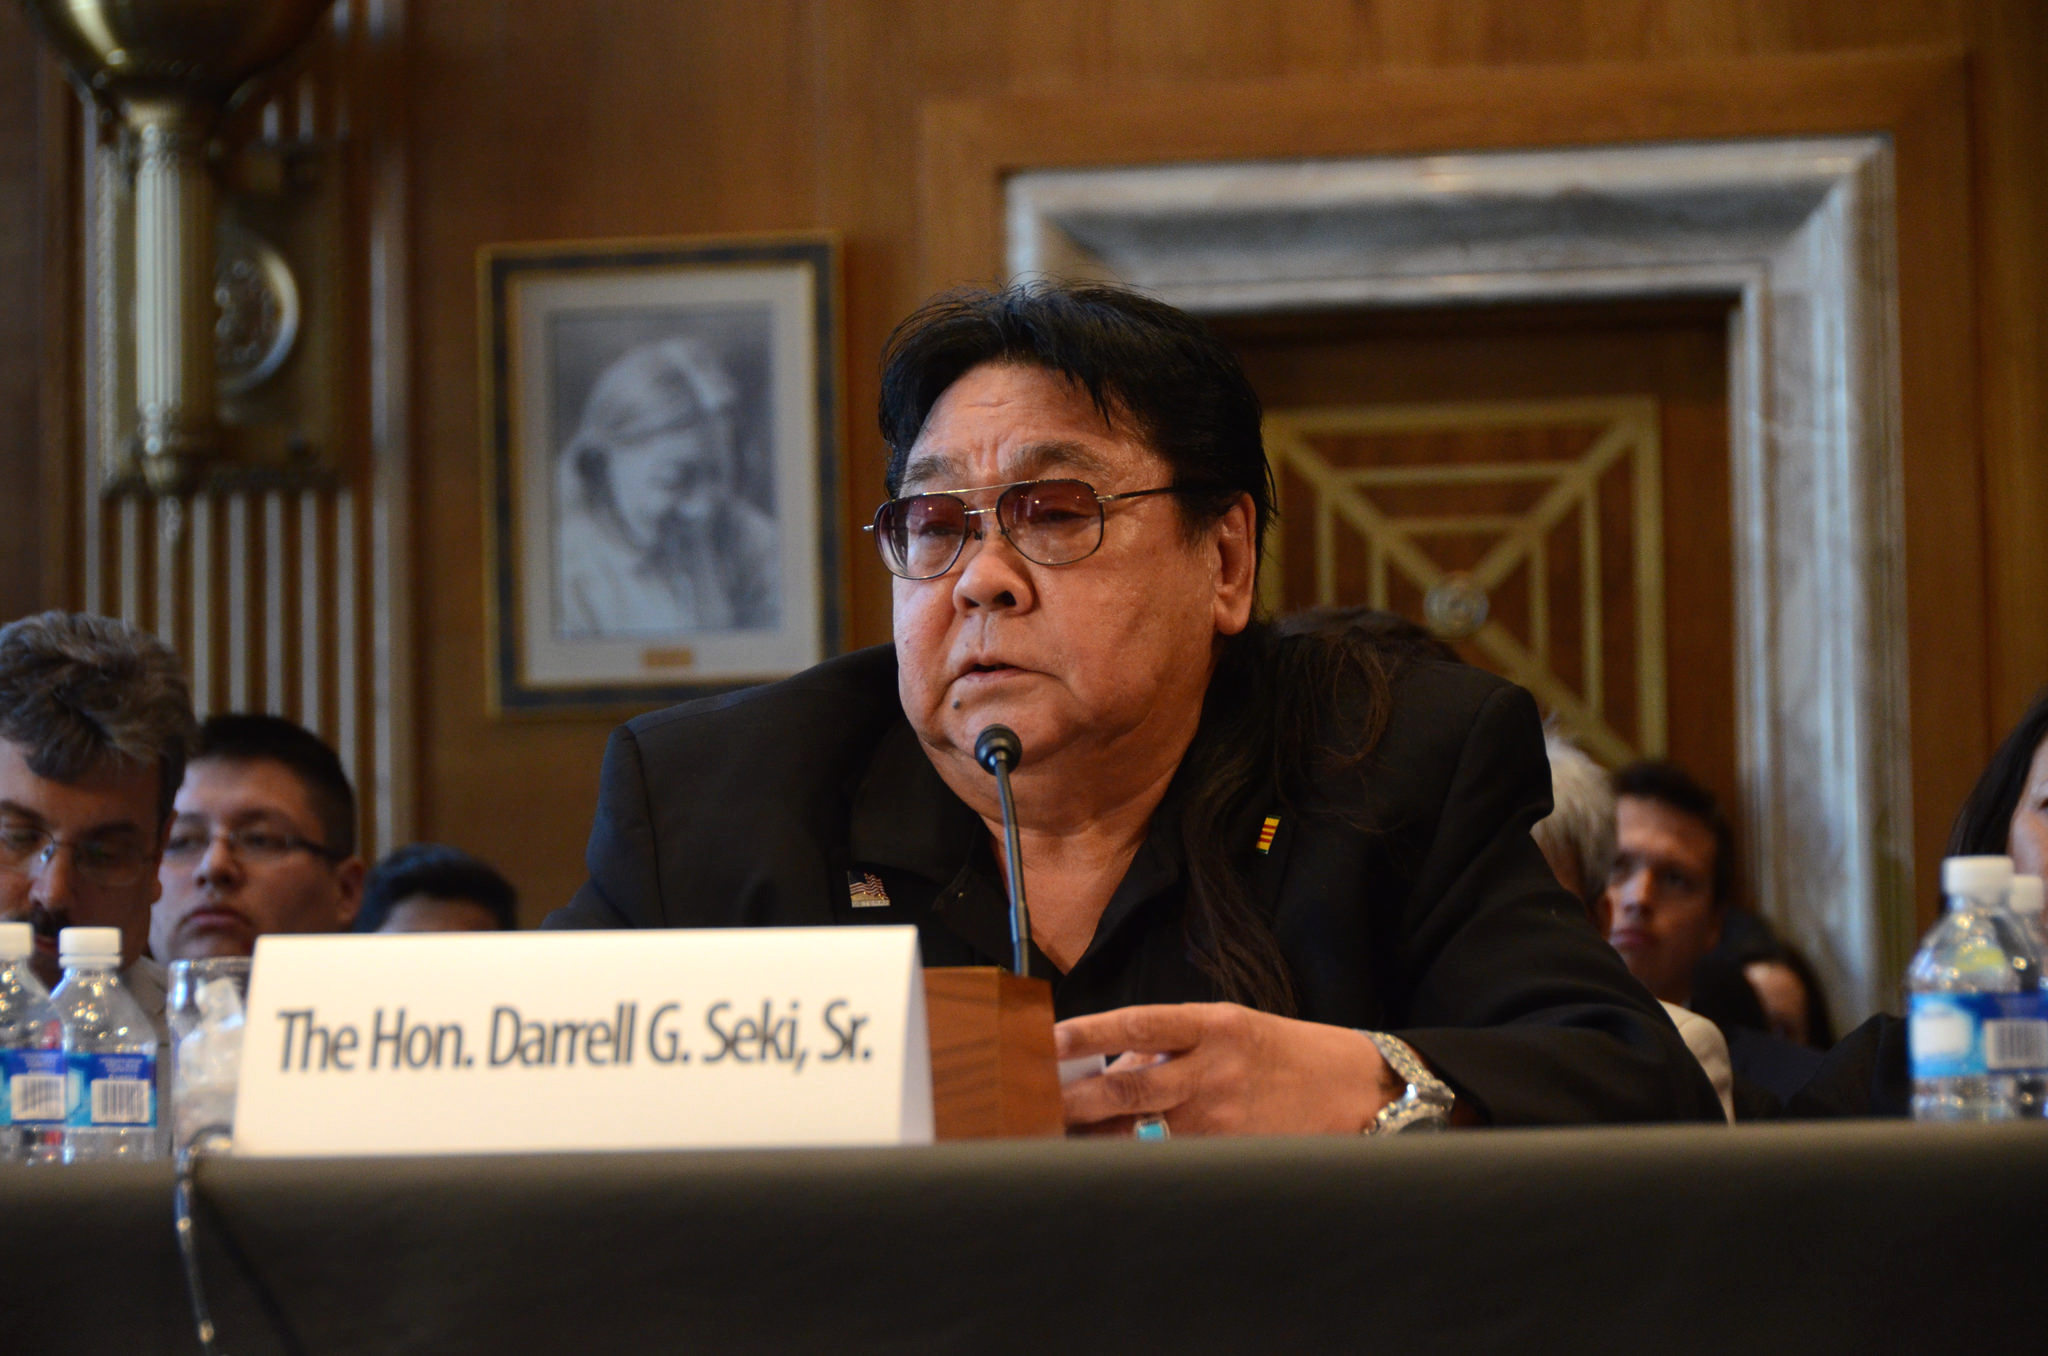 Senate panel sets hearing on substance abuse in Indian Country